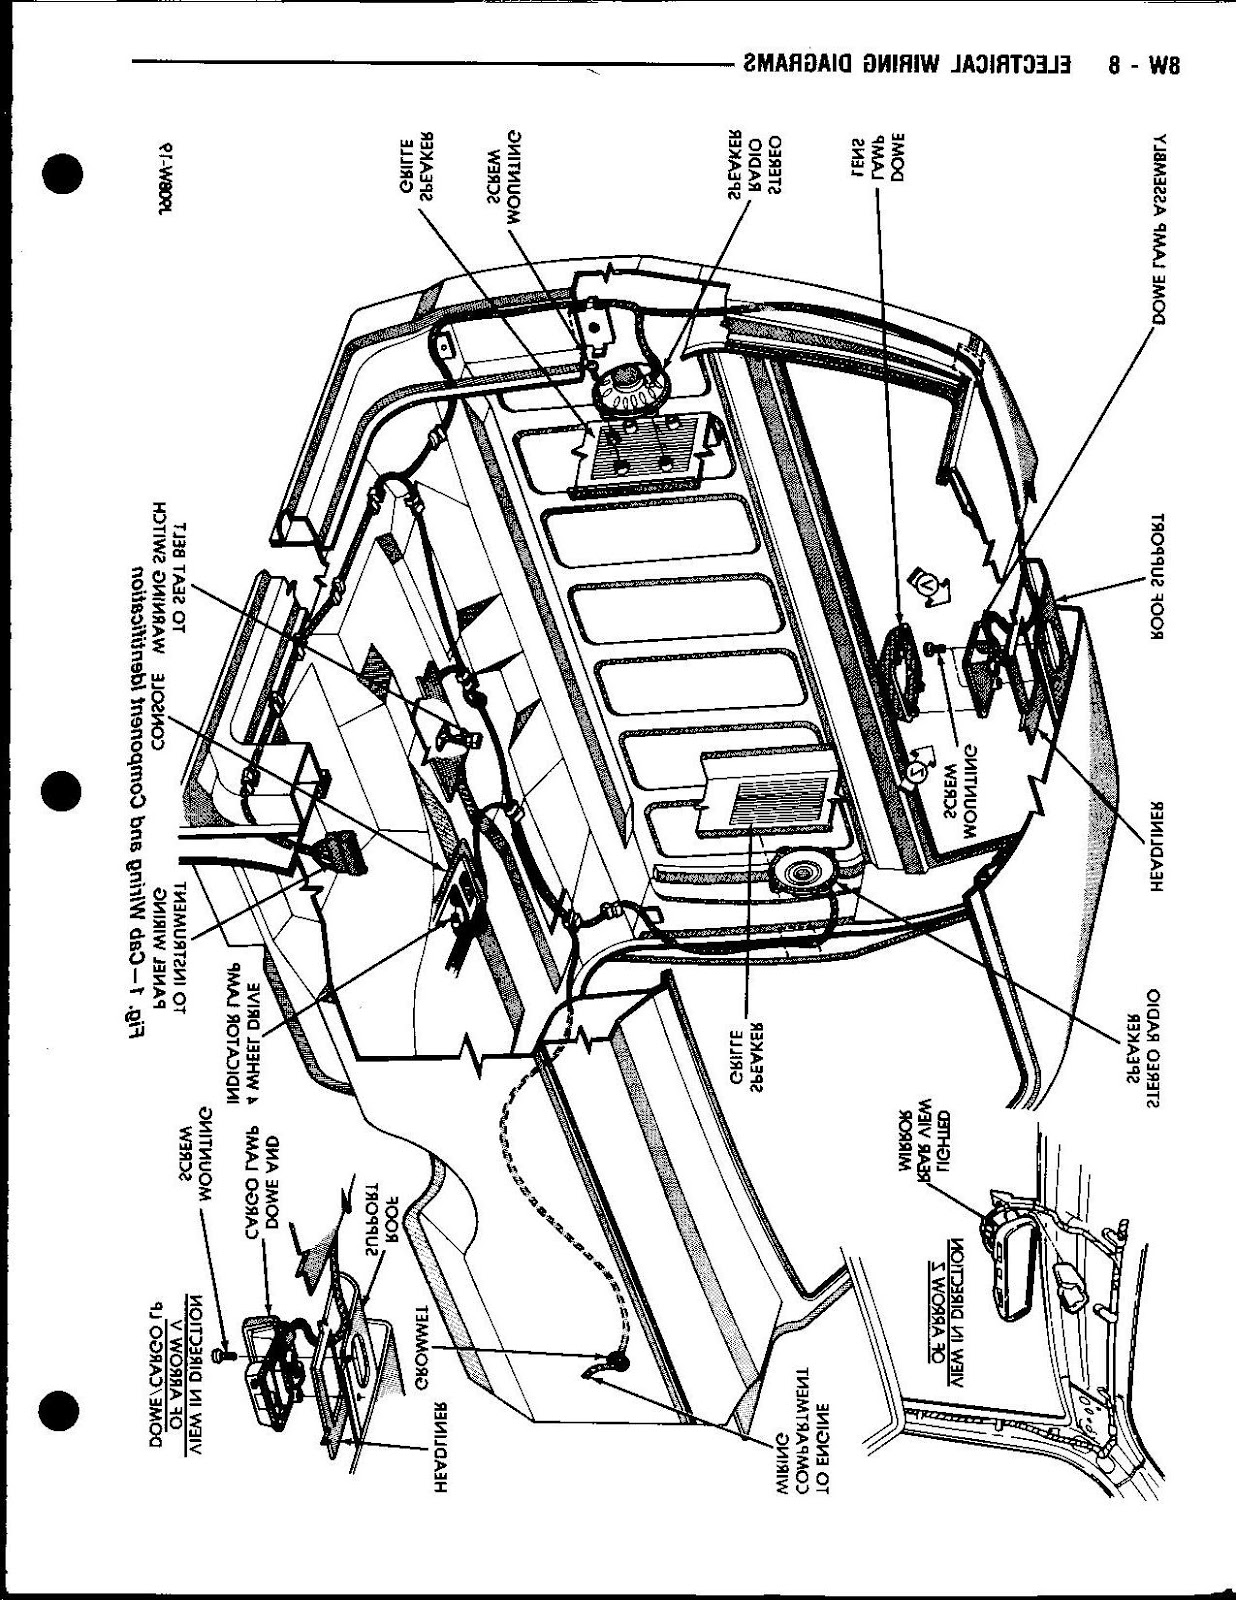 1986 F150 351w Wiring Diagram 164325 besides One Wire Alternator Diagram in addition Chevywiring besides Subaru Wrc Car besides Ebay 1933 Franklin Electrical Wiring Diagrams. on 1956 dodge street rod